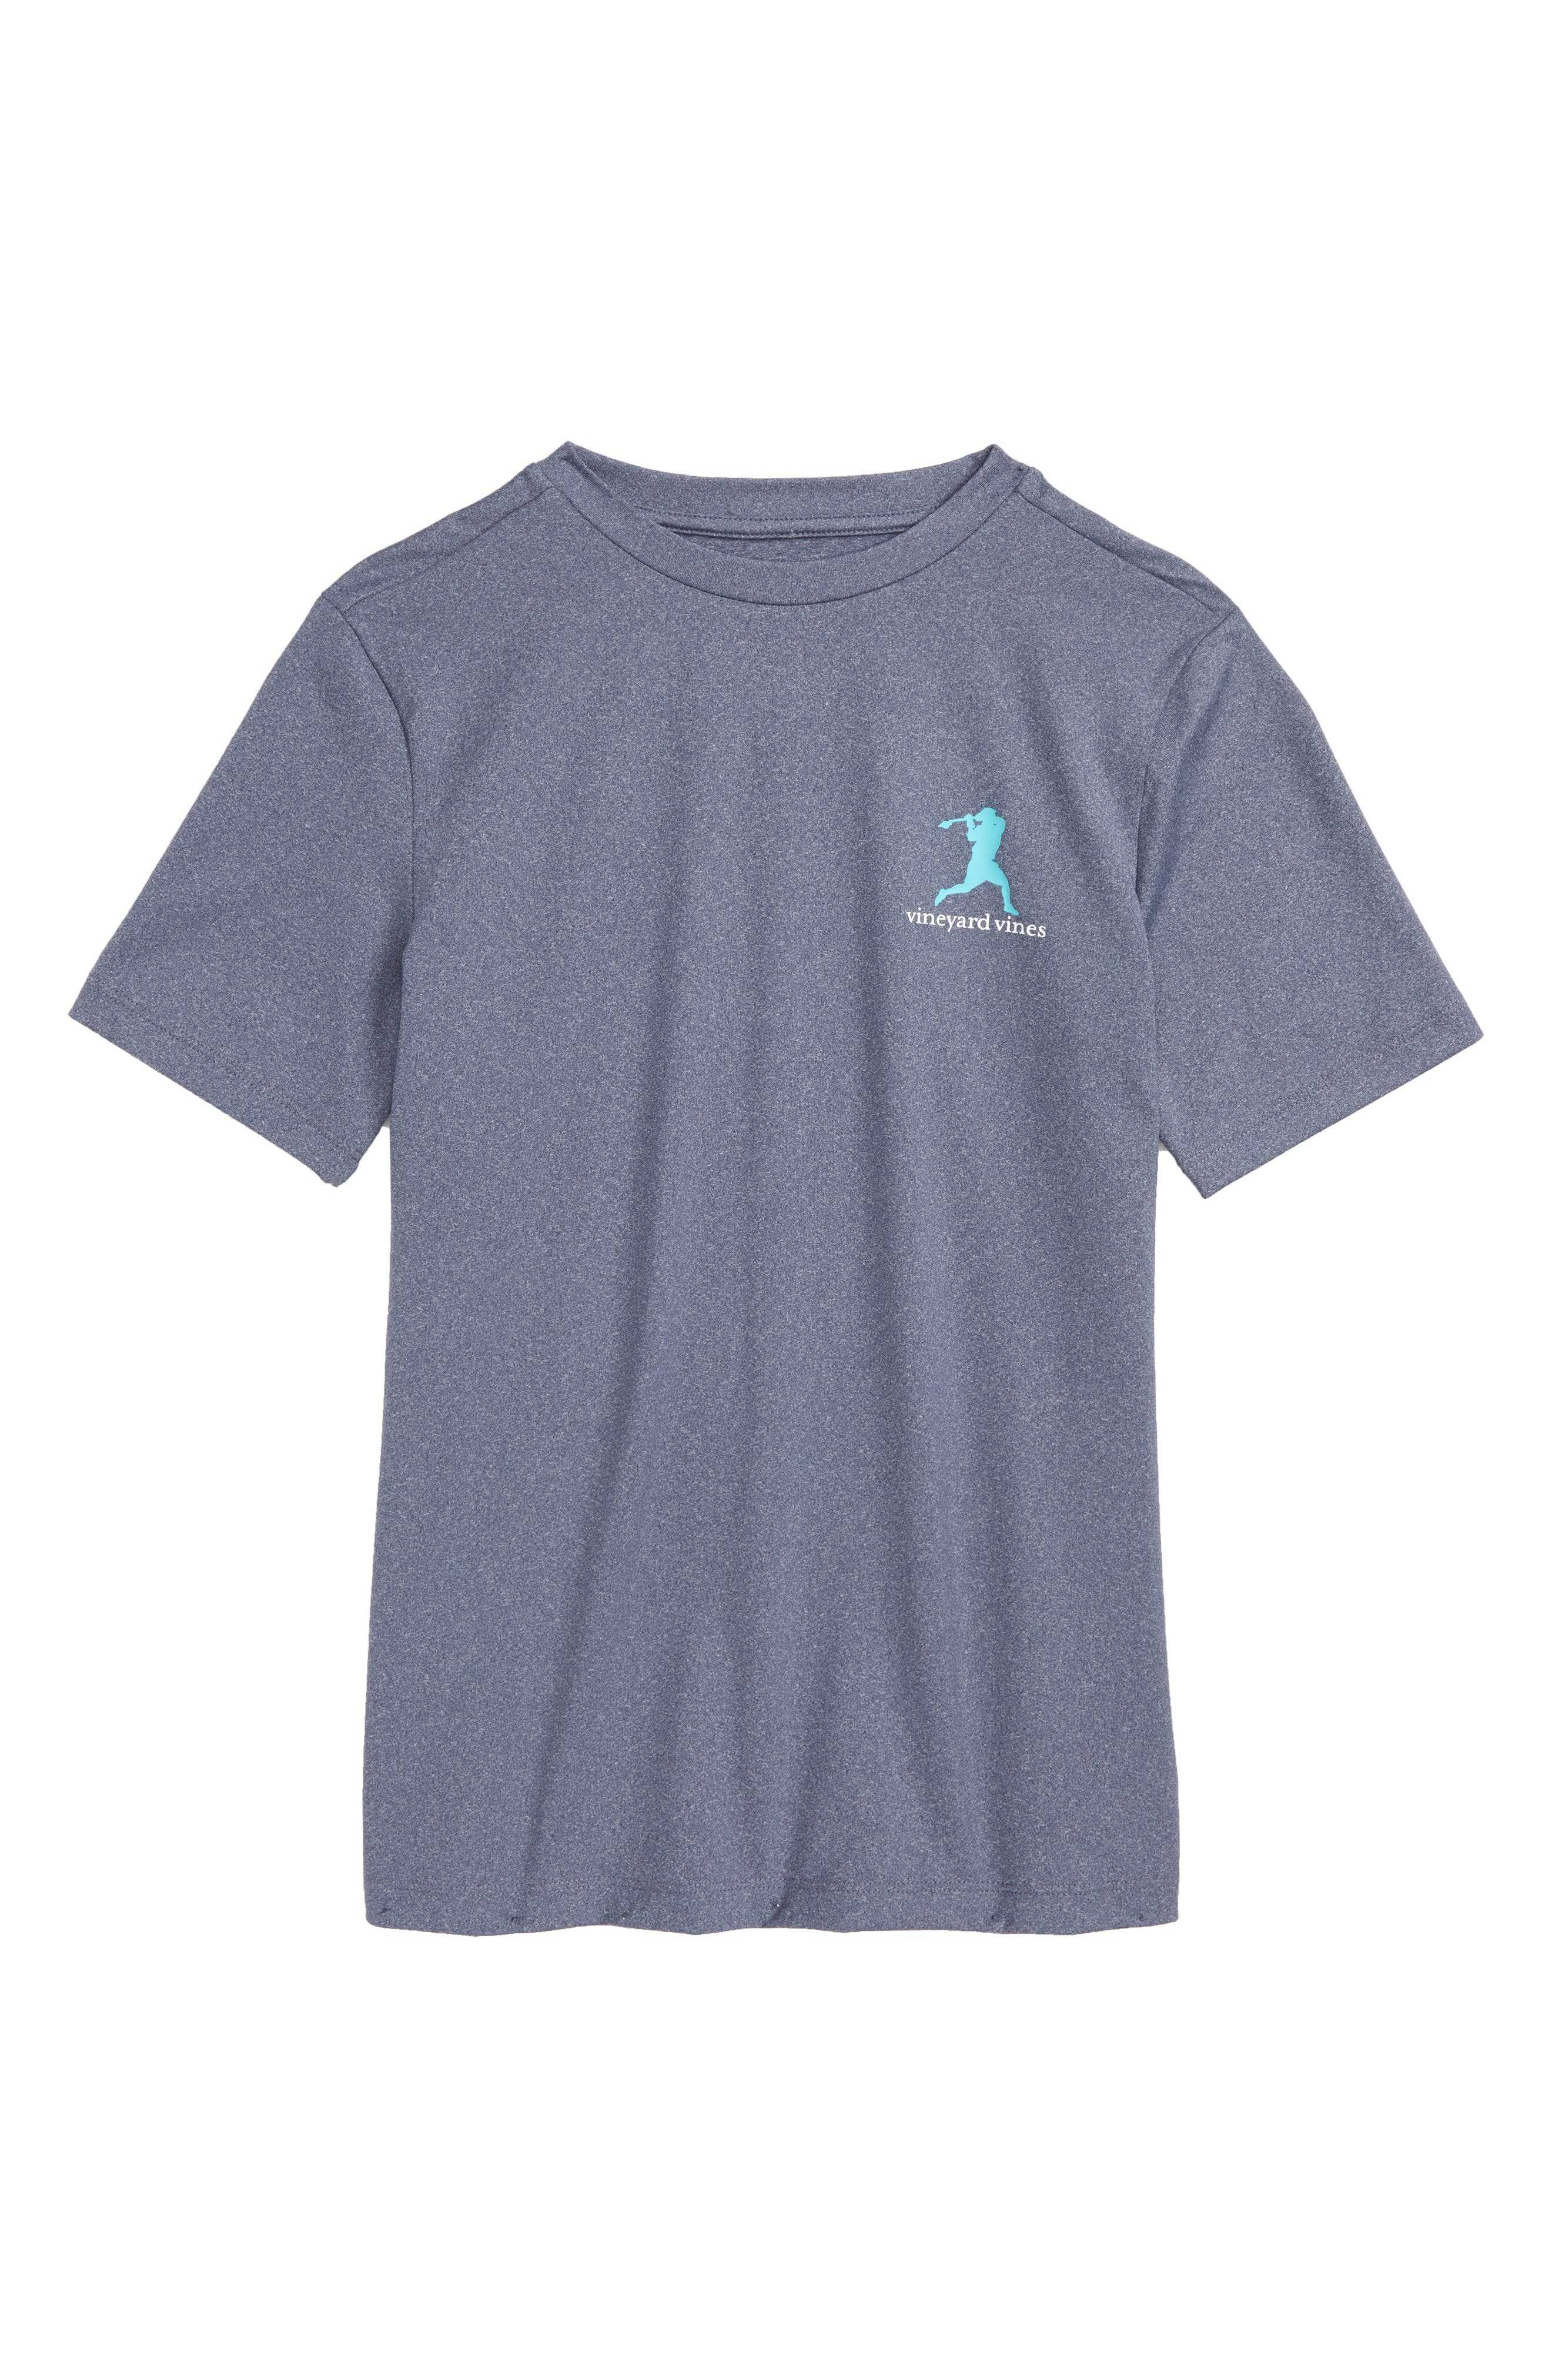 vineyard vines Wind Up Shot Graphic Performance T-Shirt (Toddler Boys & Little Boys)